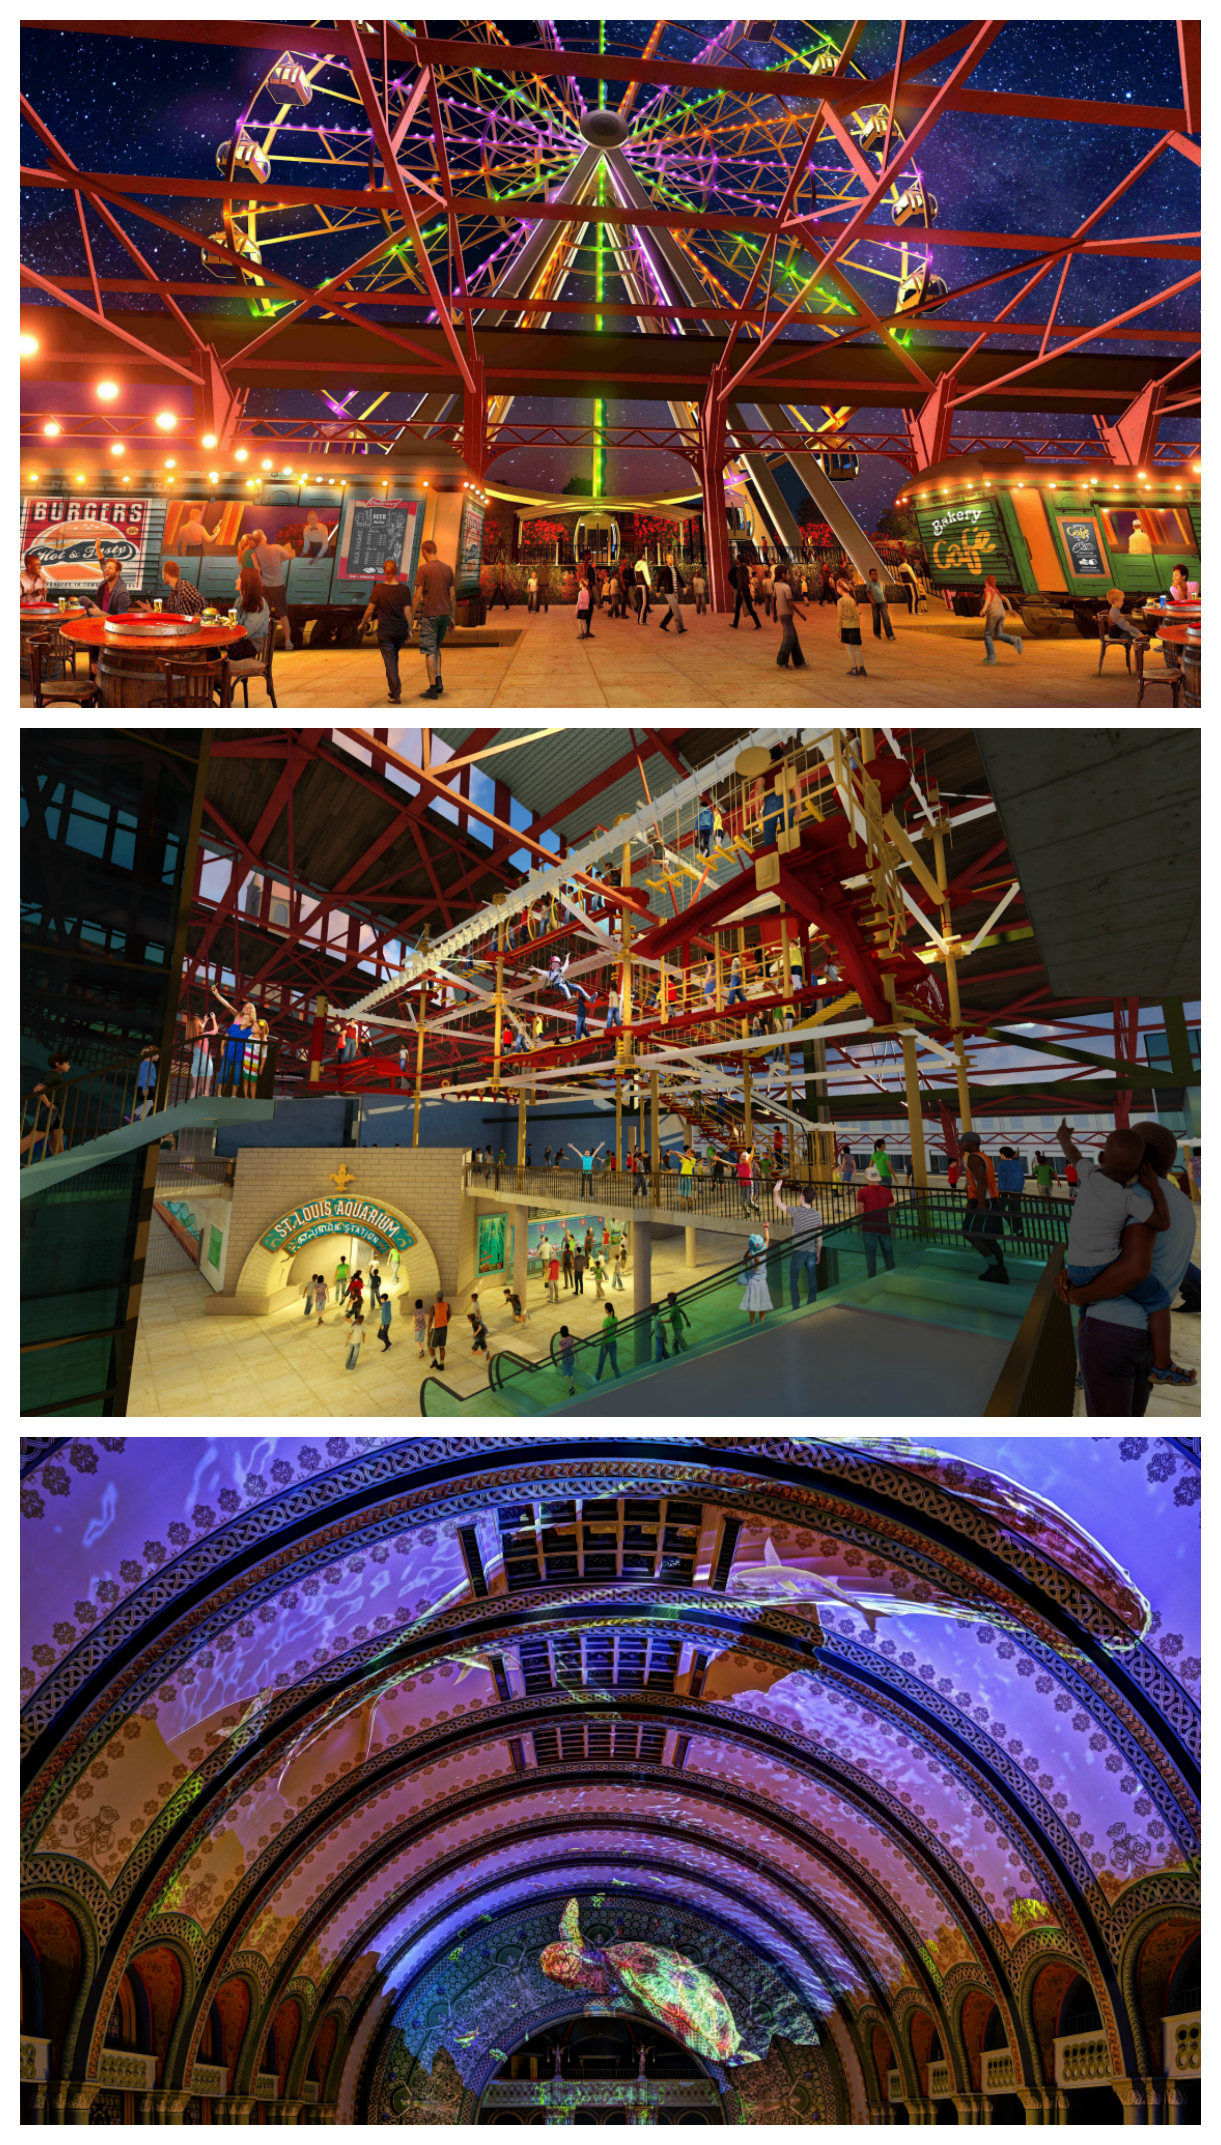 Union Station Grand Hall. St. Louis Wheel, ropes course and laser light show at St. Louis Union Station Aquarium.